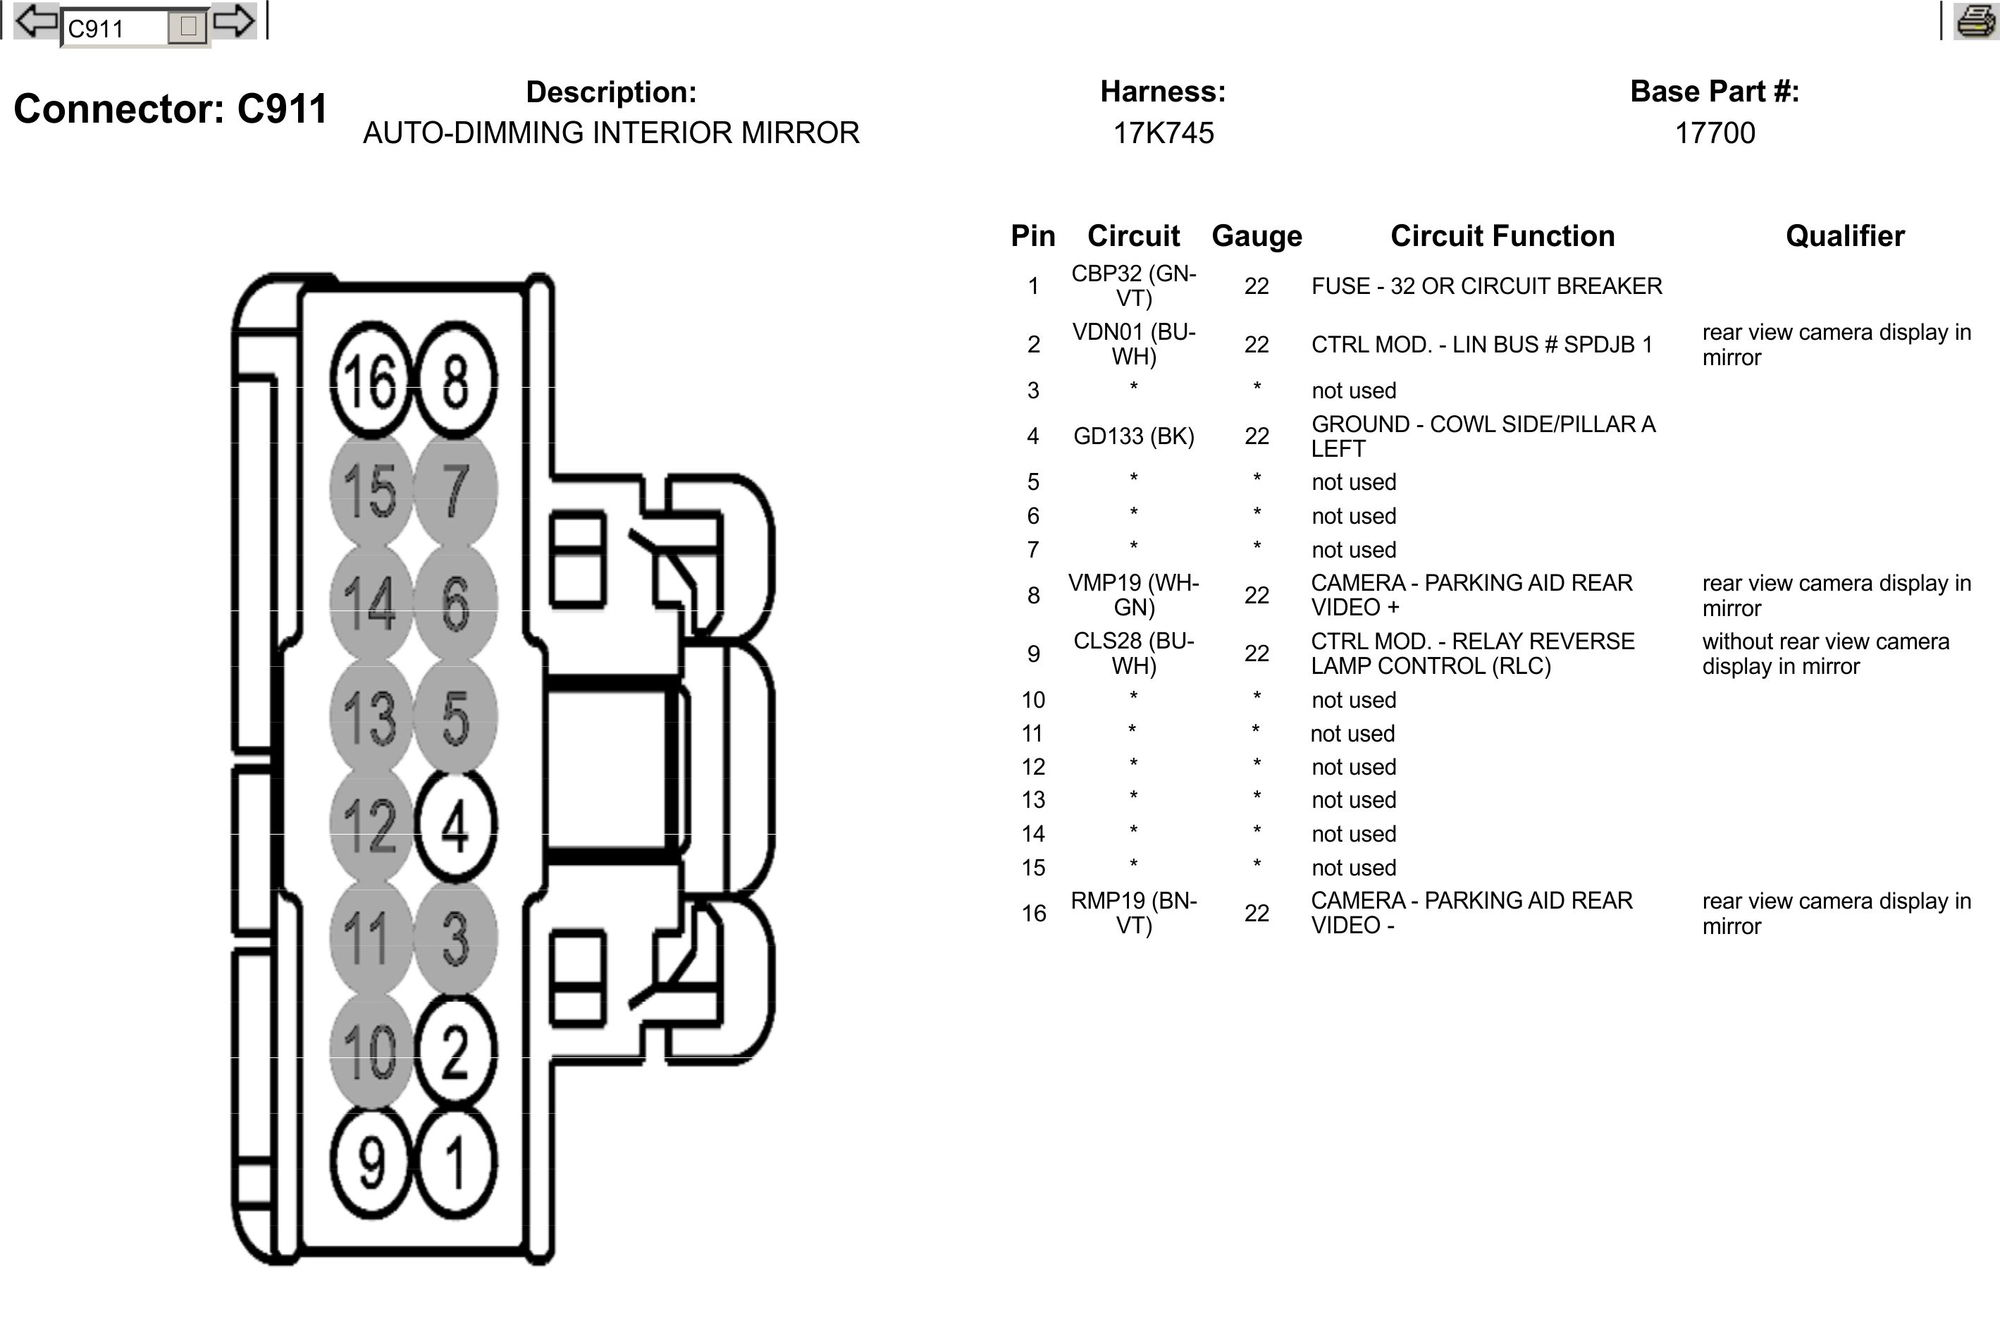 1384953 Need Wiring Pinout For 2012 Lariat Rear View Mirror Please on ford 7 pin wiring diagram